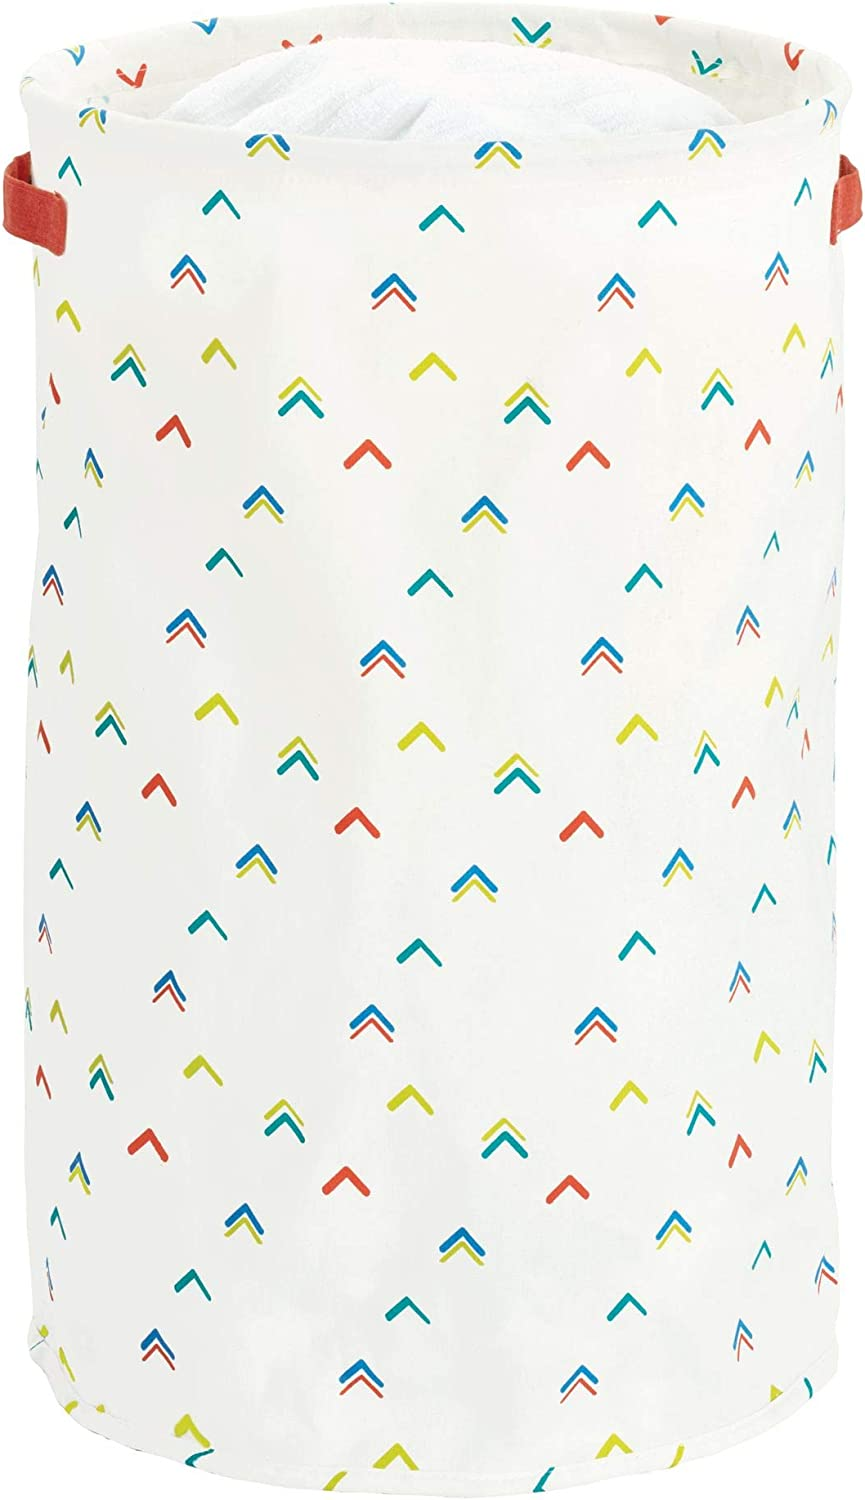 iDesign Arrow Fabric Round Storage Bin, Basket Container Mini Hamper with Dual Side Handles for Closet, Bedroom, Laundry, Clothing, Toys, Nursery - Multicolored